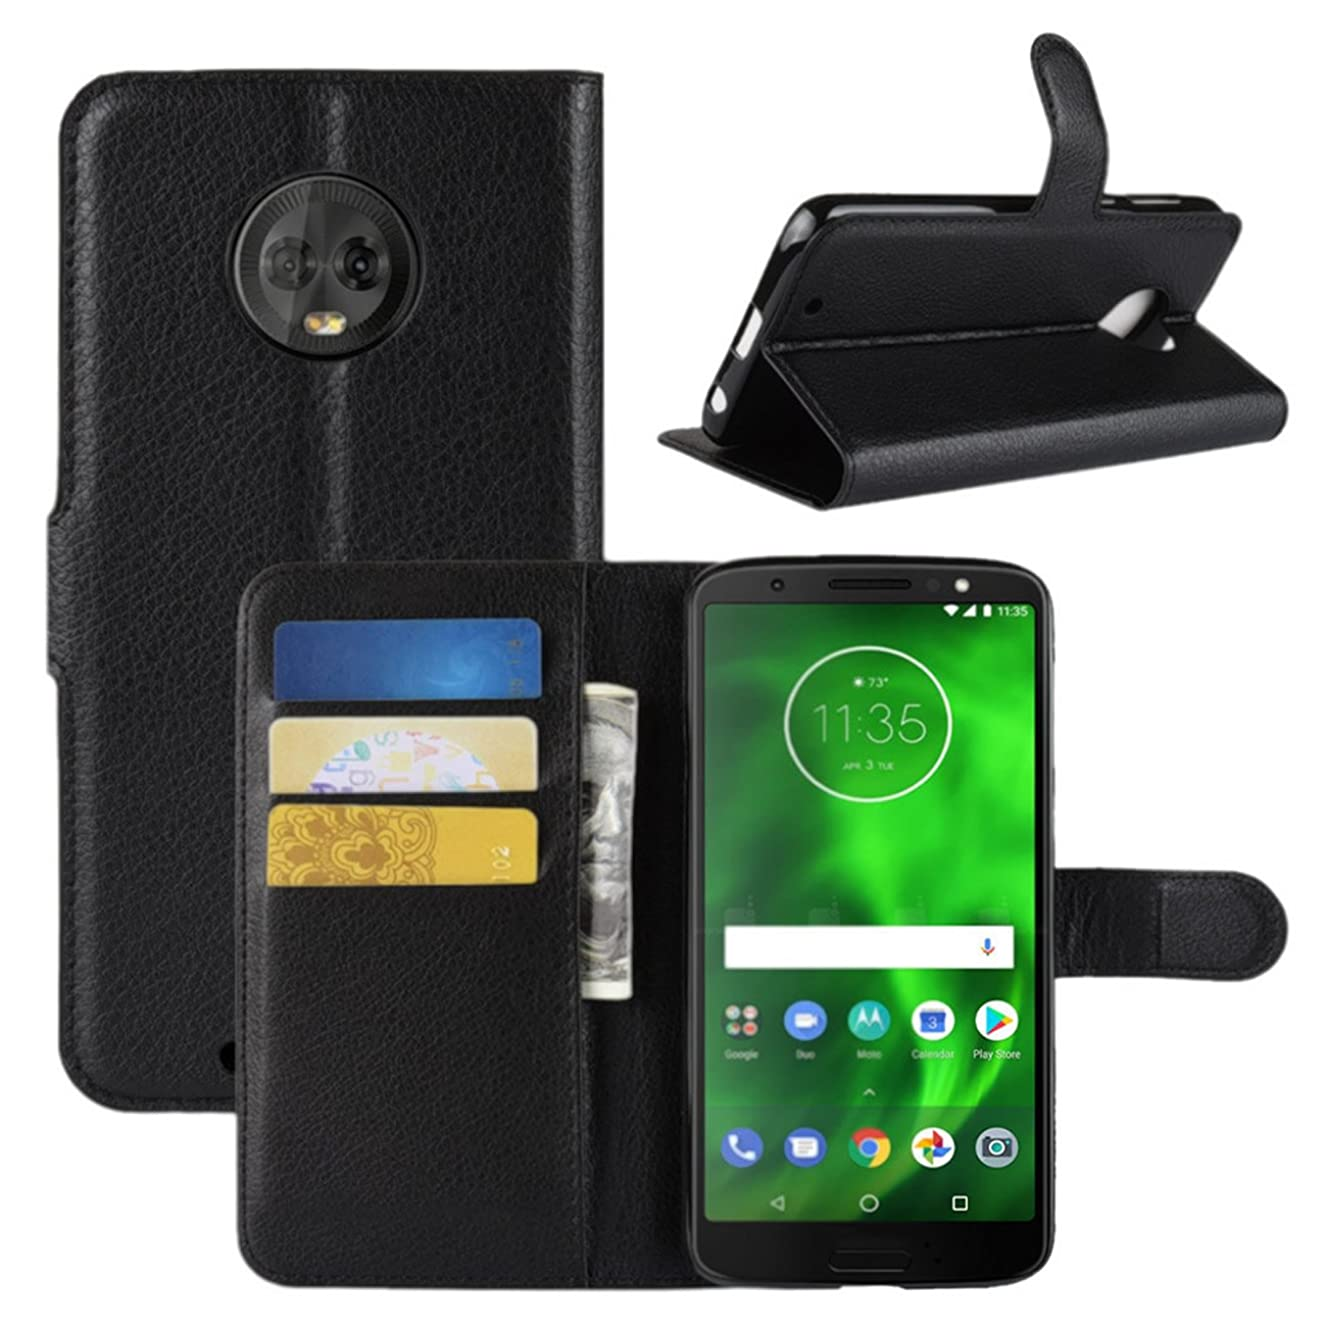 Moto G6 Case, Moto G 6th Gen Case, Fettion Premium PU Leather Wallet Flip Phone Protective Case Cover with Card Slots for Motorola Moto G6 (6th Generation) Smartphone (Black)